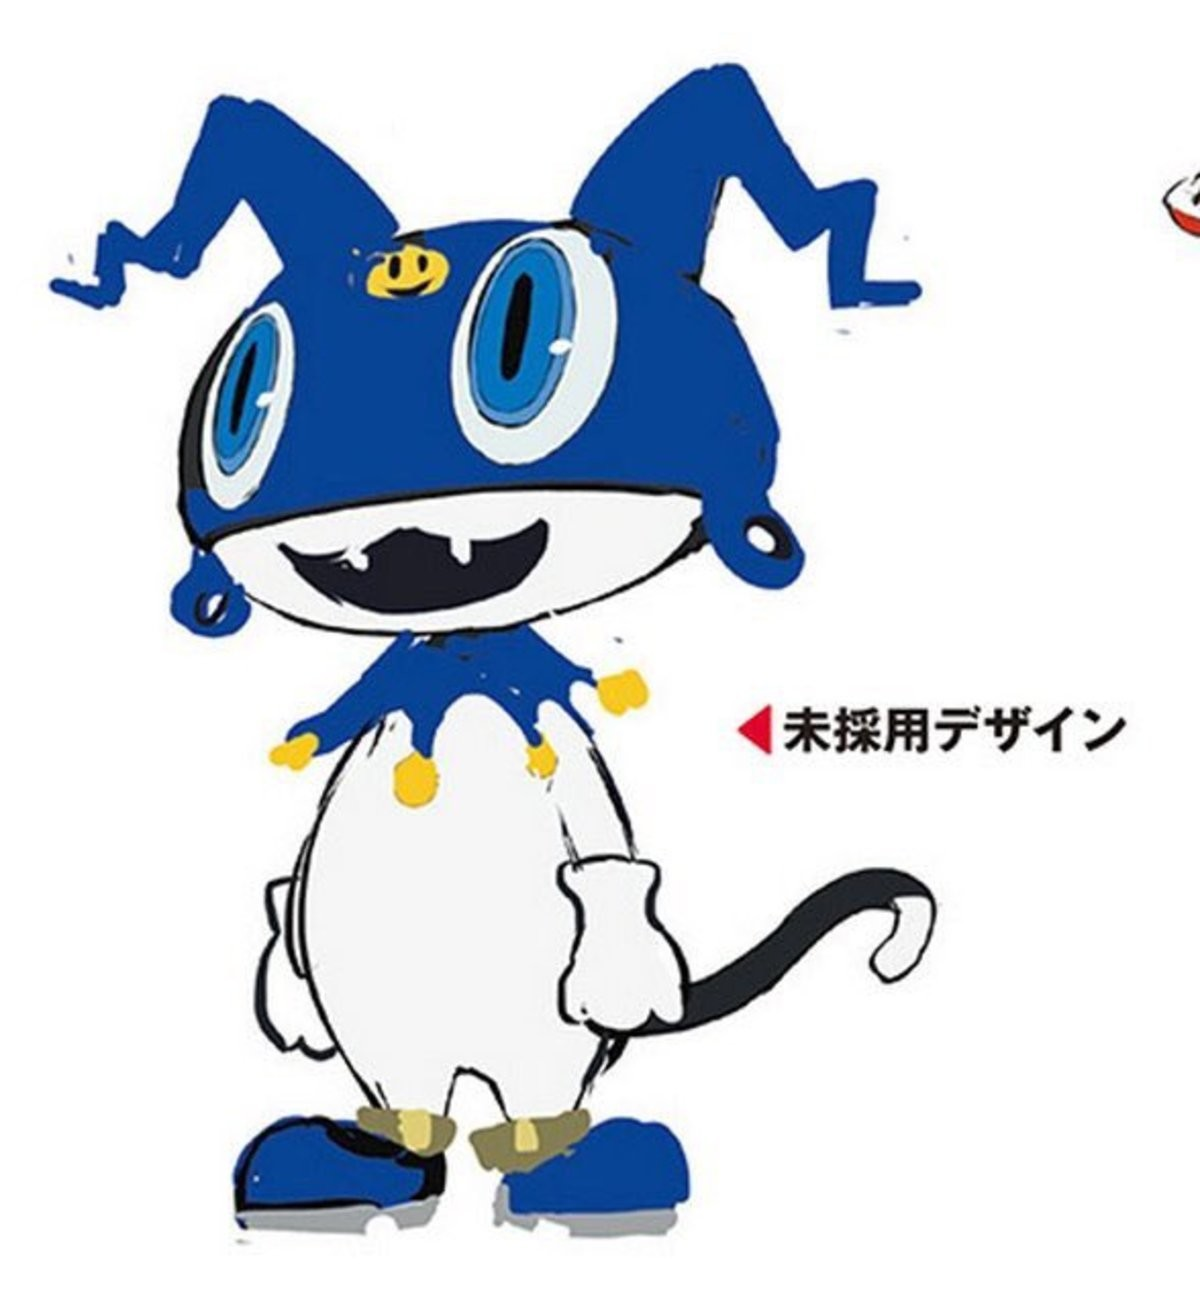 Hee-go to bed-ho. join list: Jacked (54 subs)Mention History.. Jack Frost is such a fun Persona, especially the Jack Bros from Persona 3.